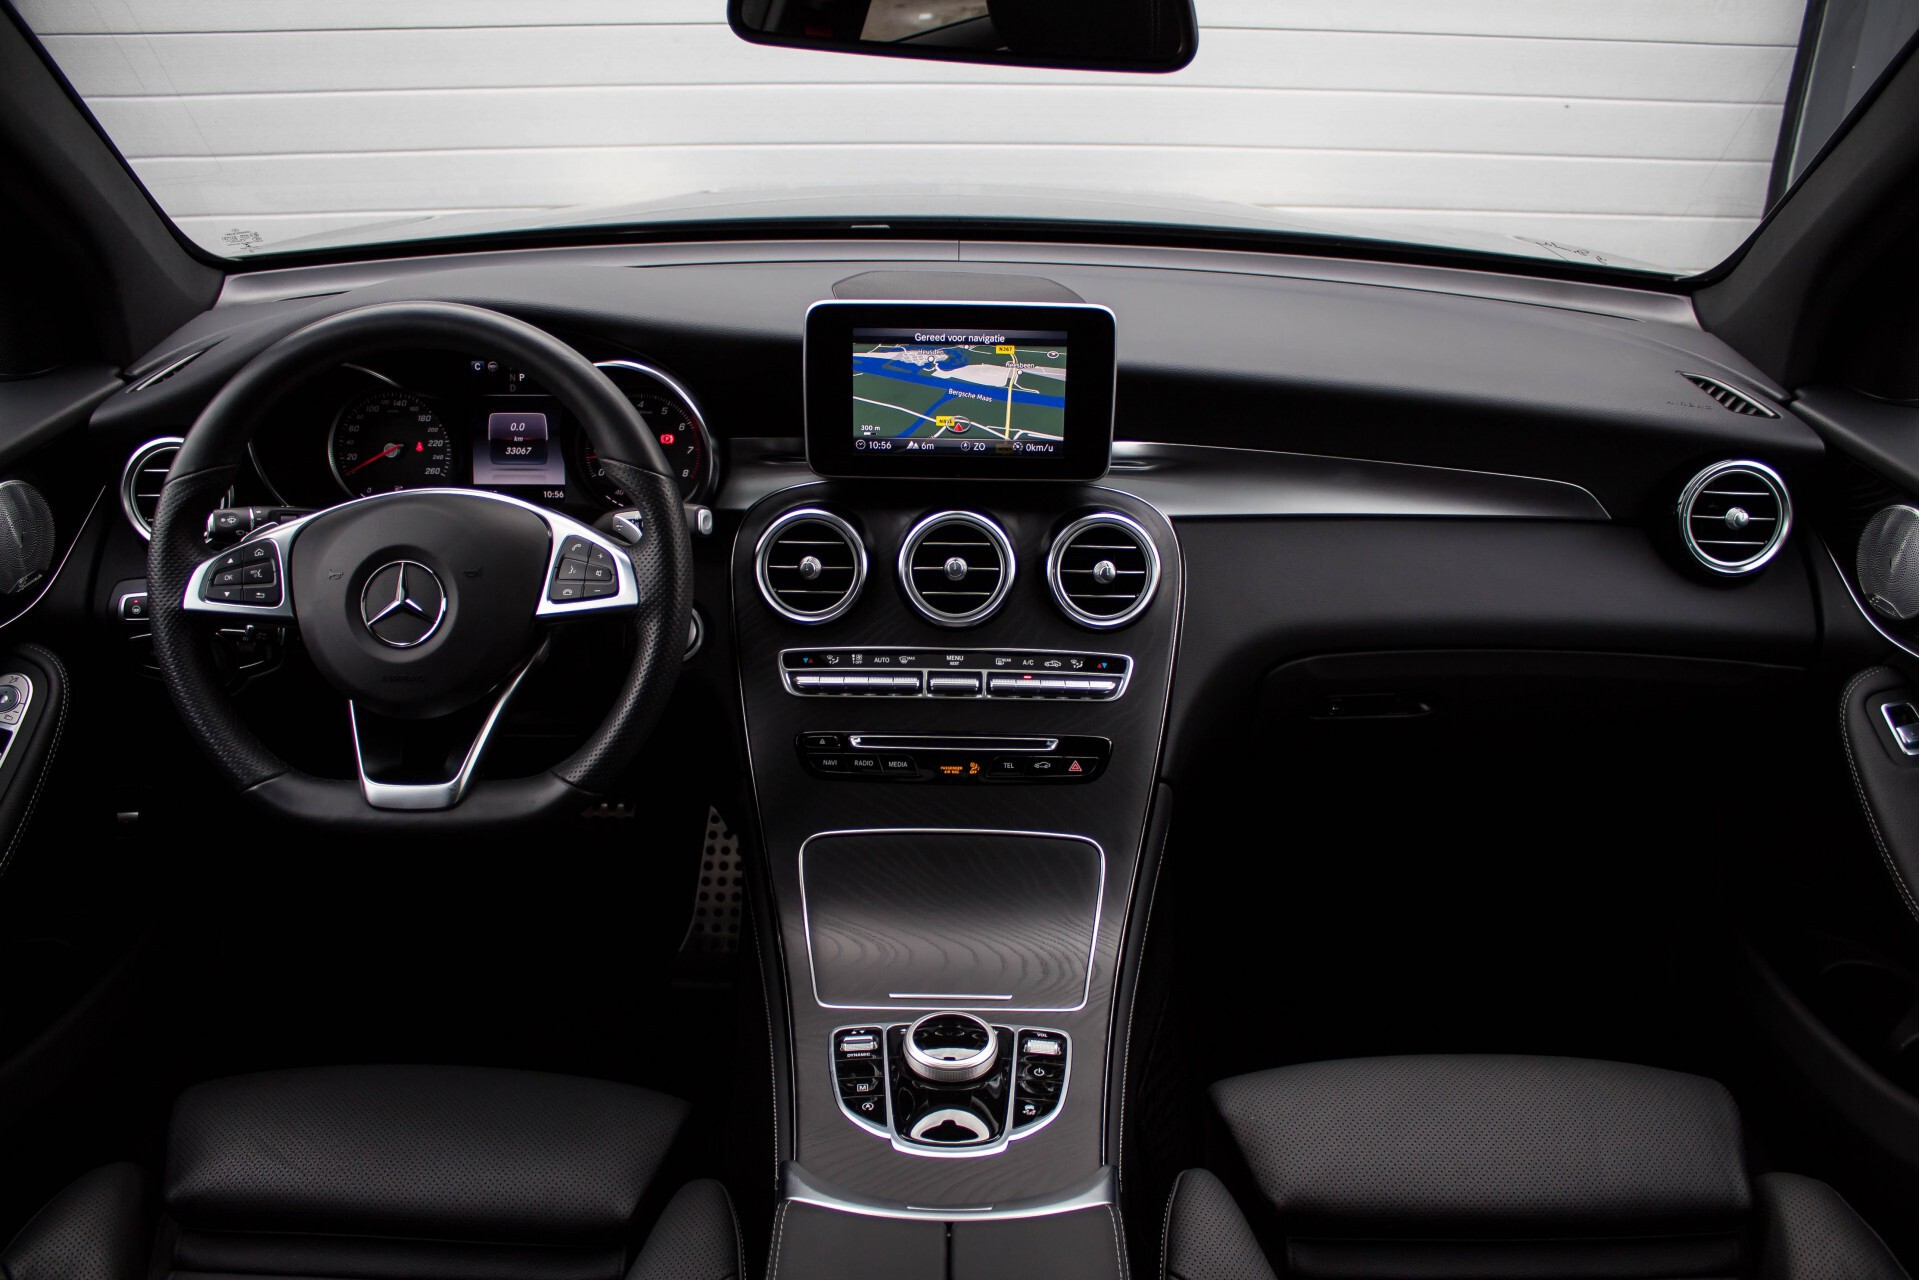 Mercedes-Benz GLC-Klasse 300 4-M AMG Panorama Distronic/Keyless/Burmester/Memory/Night Aut9 Foto 7